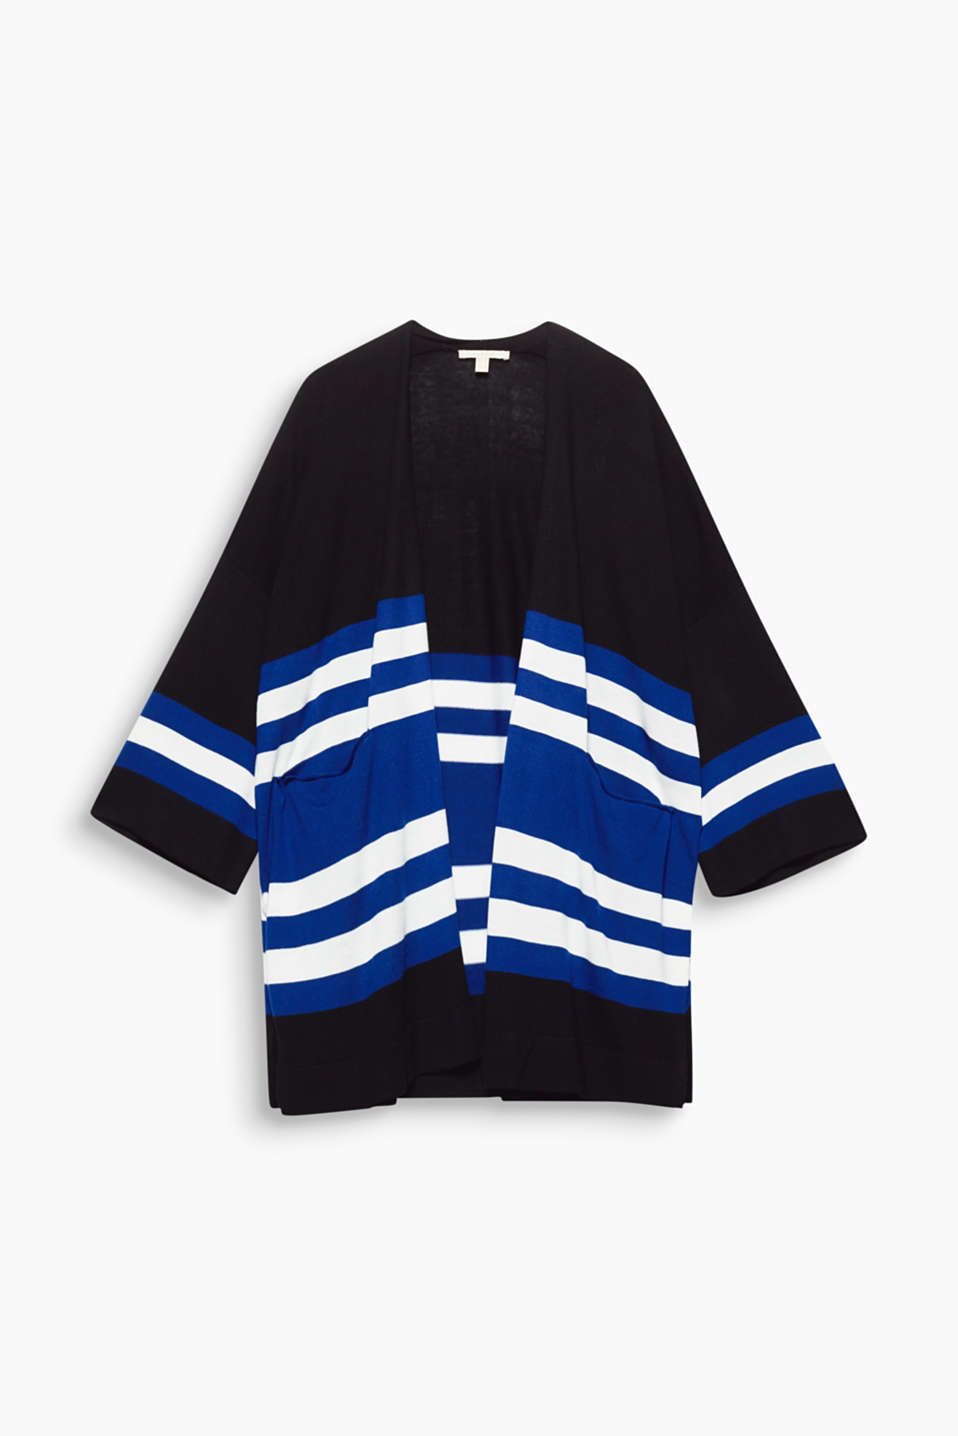 This cardigan combines two trends with a casual oversized silhouette and geometric block stripes.